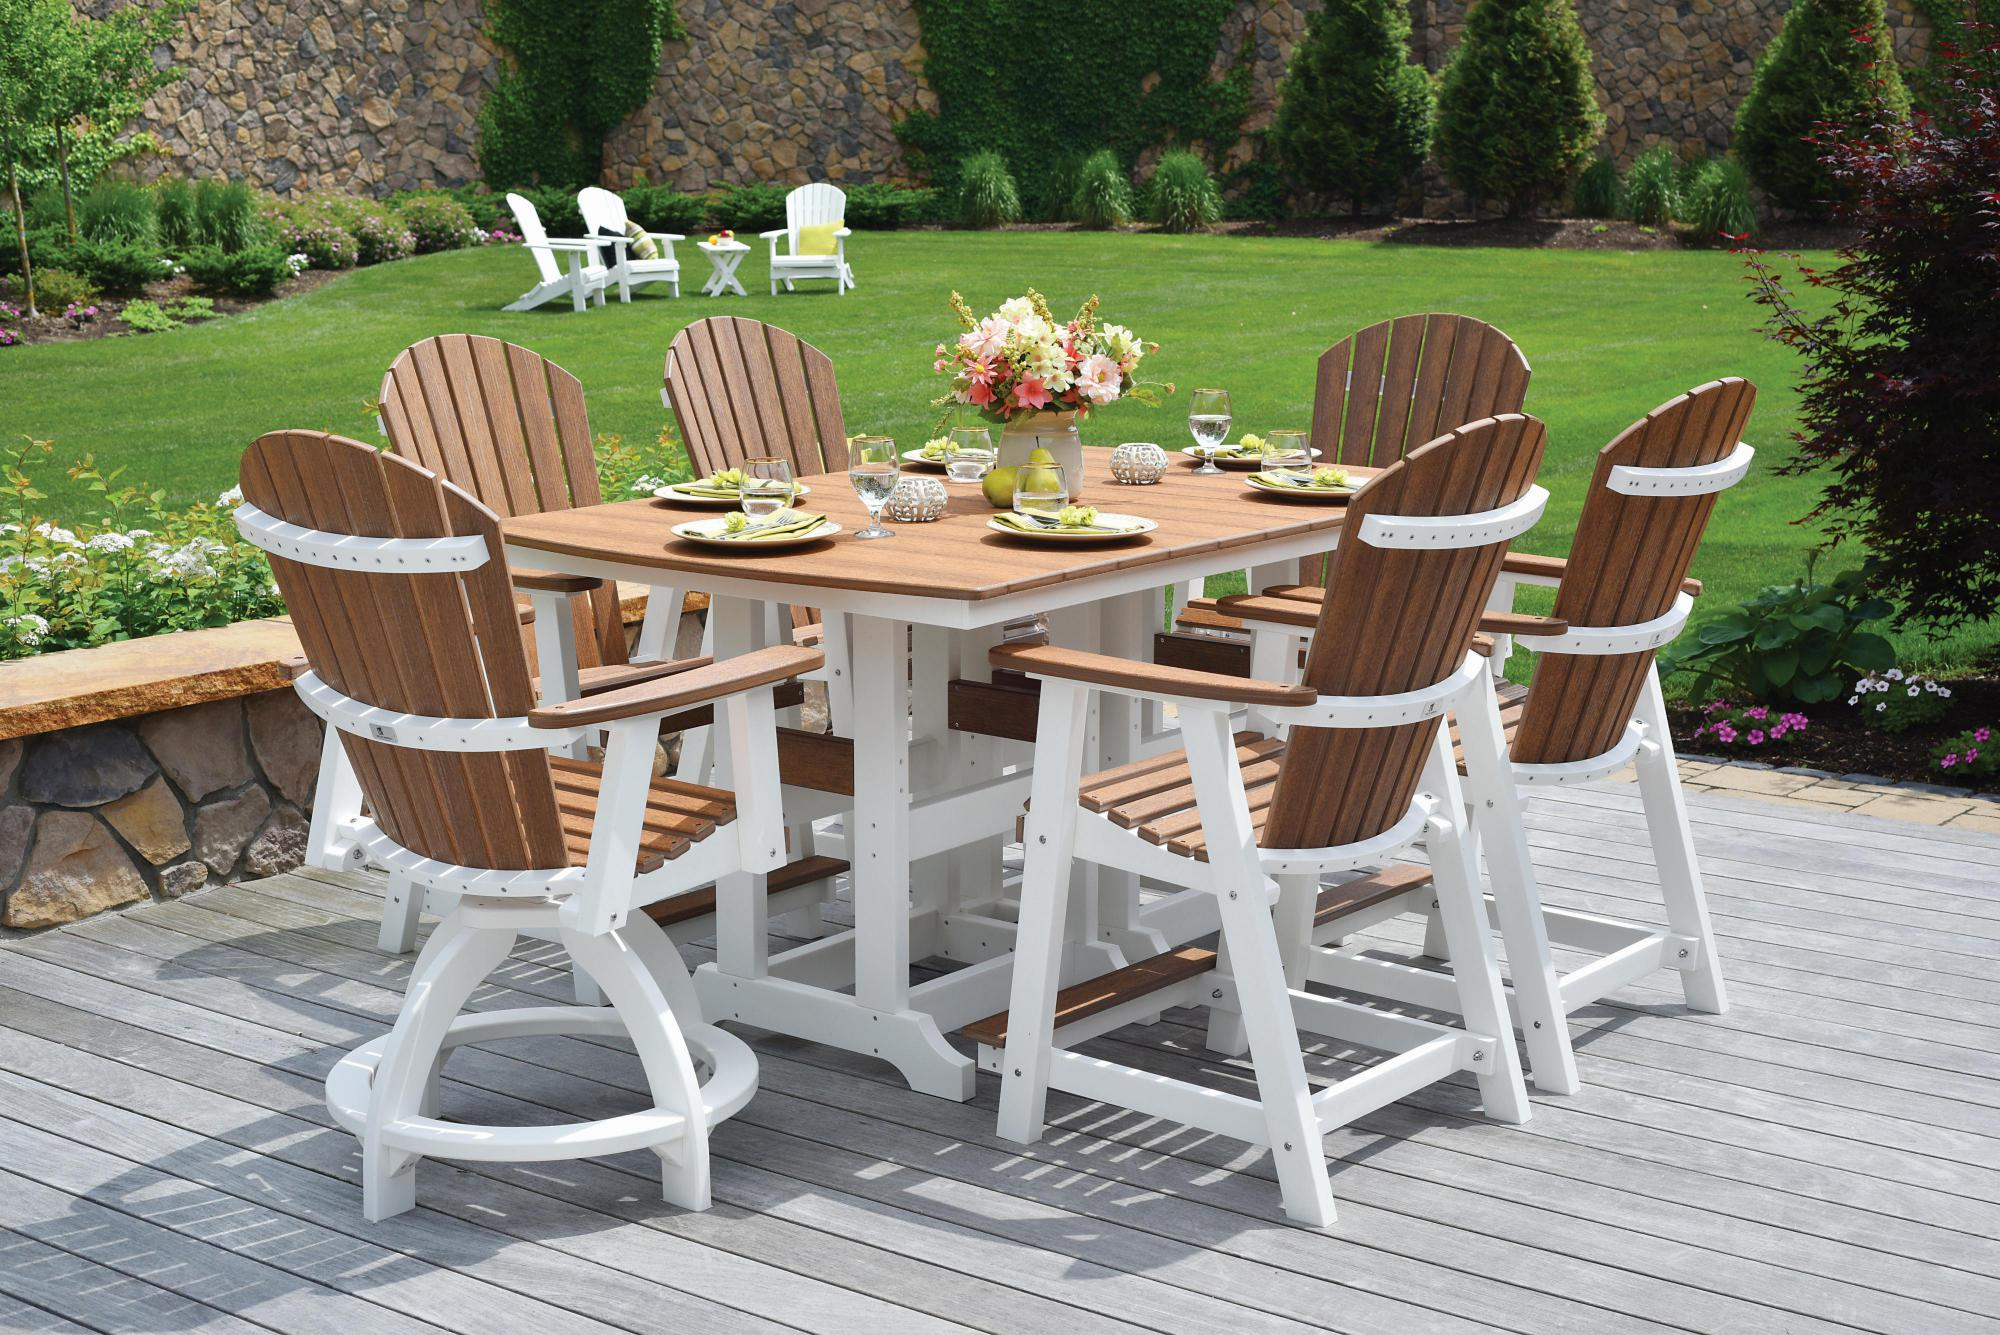 Natural Finishes Antique Mahogany on White 44x72 Table with Chairs